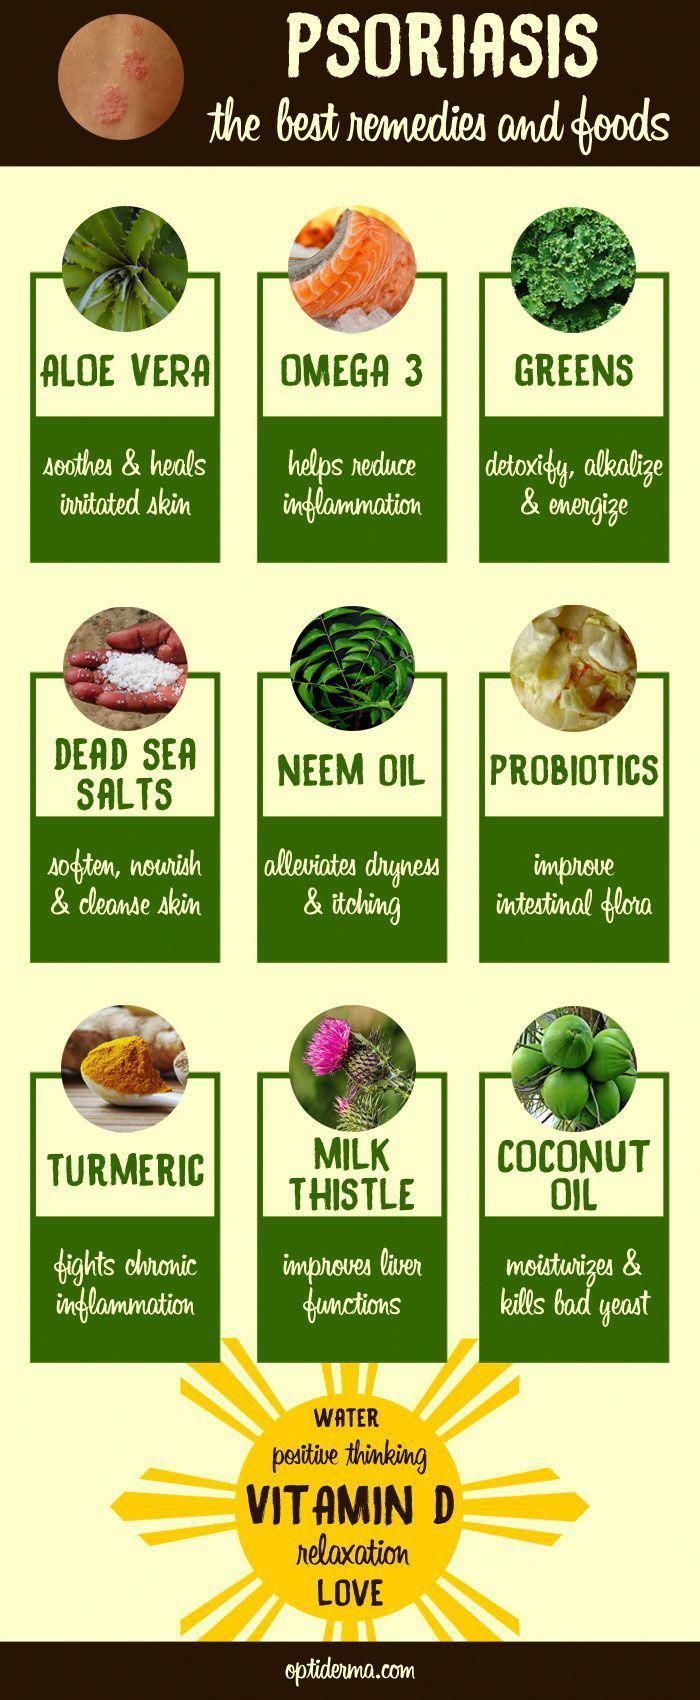 Best Remedies Foods For Psoriasis Learn More About Which Foods To Eat And Avoid When Yo Natural Psoriasis Remedies Natural Cure For Arthritis Psoriasis Diet